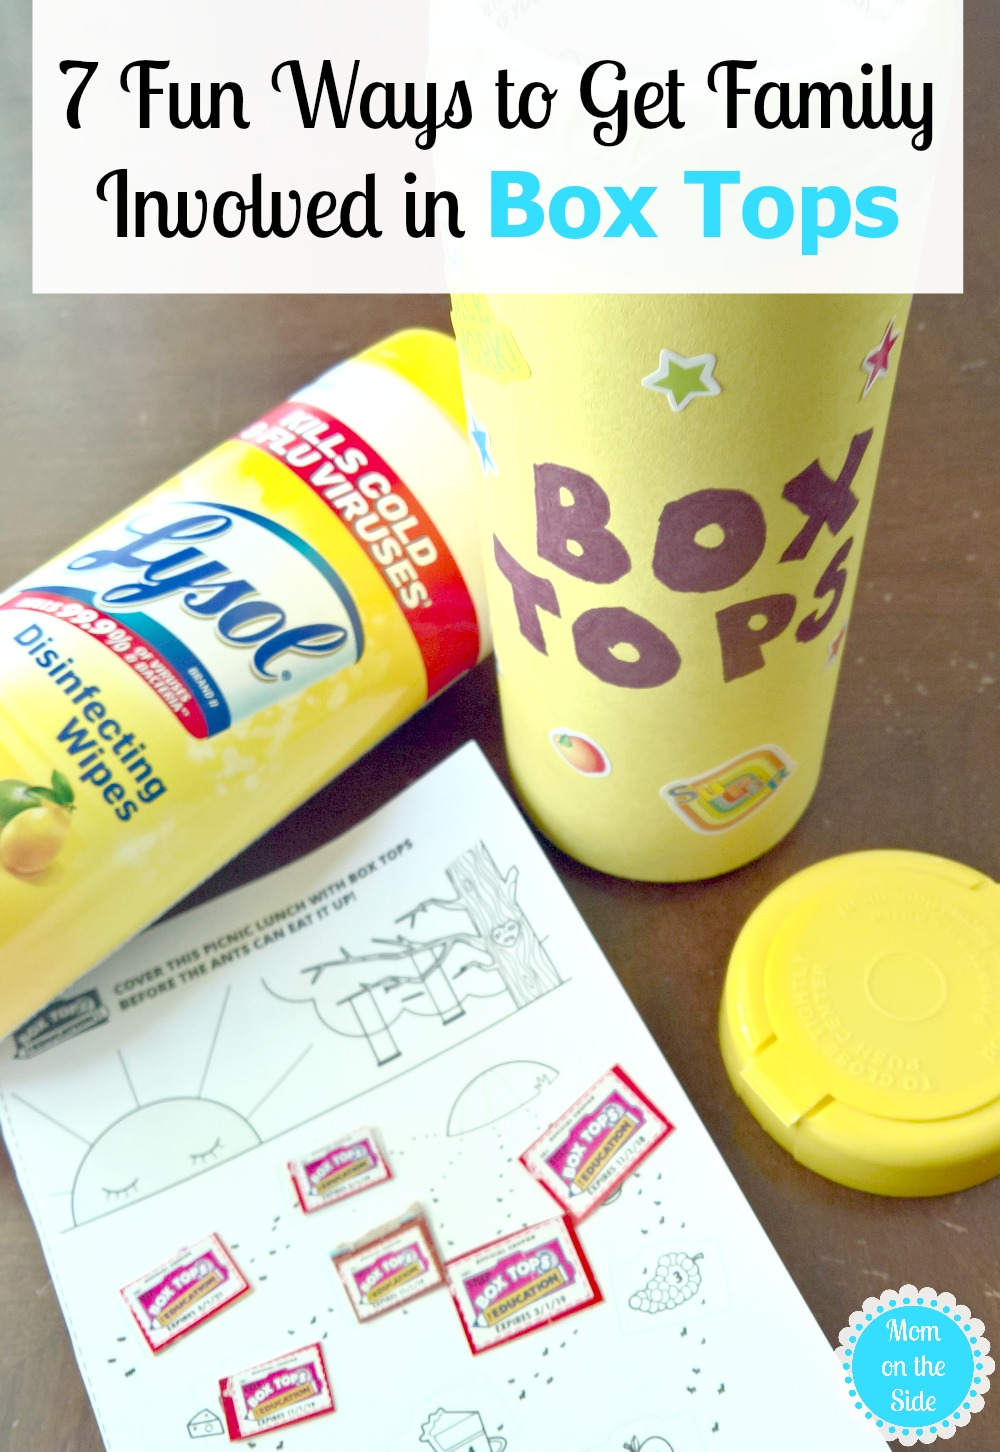 Getting Family Involved with Box Tops